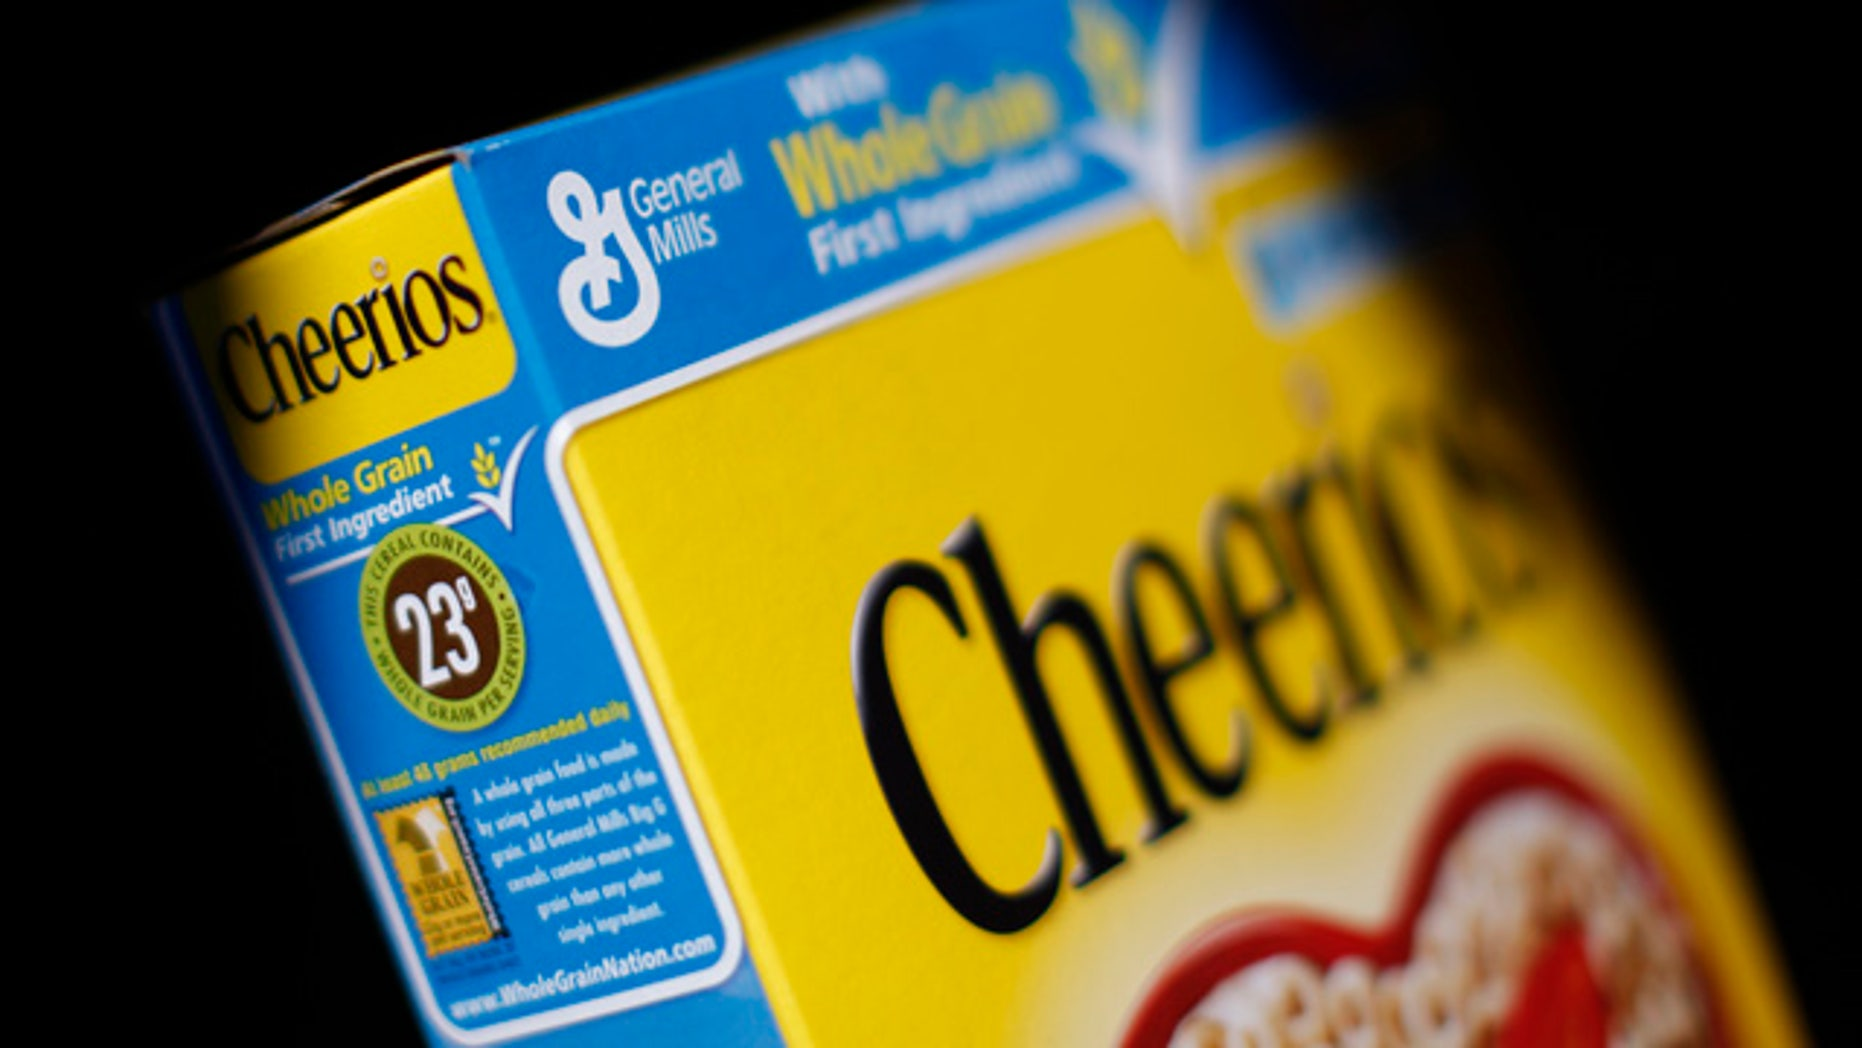 The General Mills logo is seen on a box of Cheerios cereal in Evanston, Illinois.